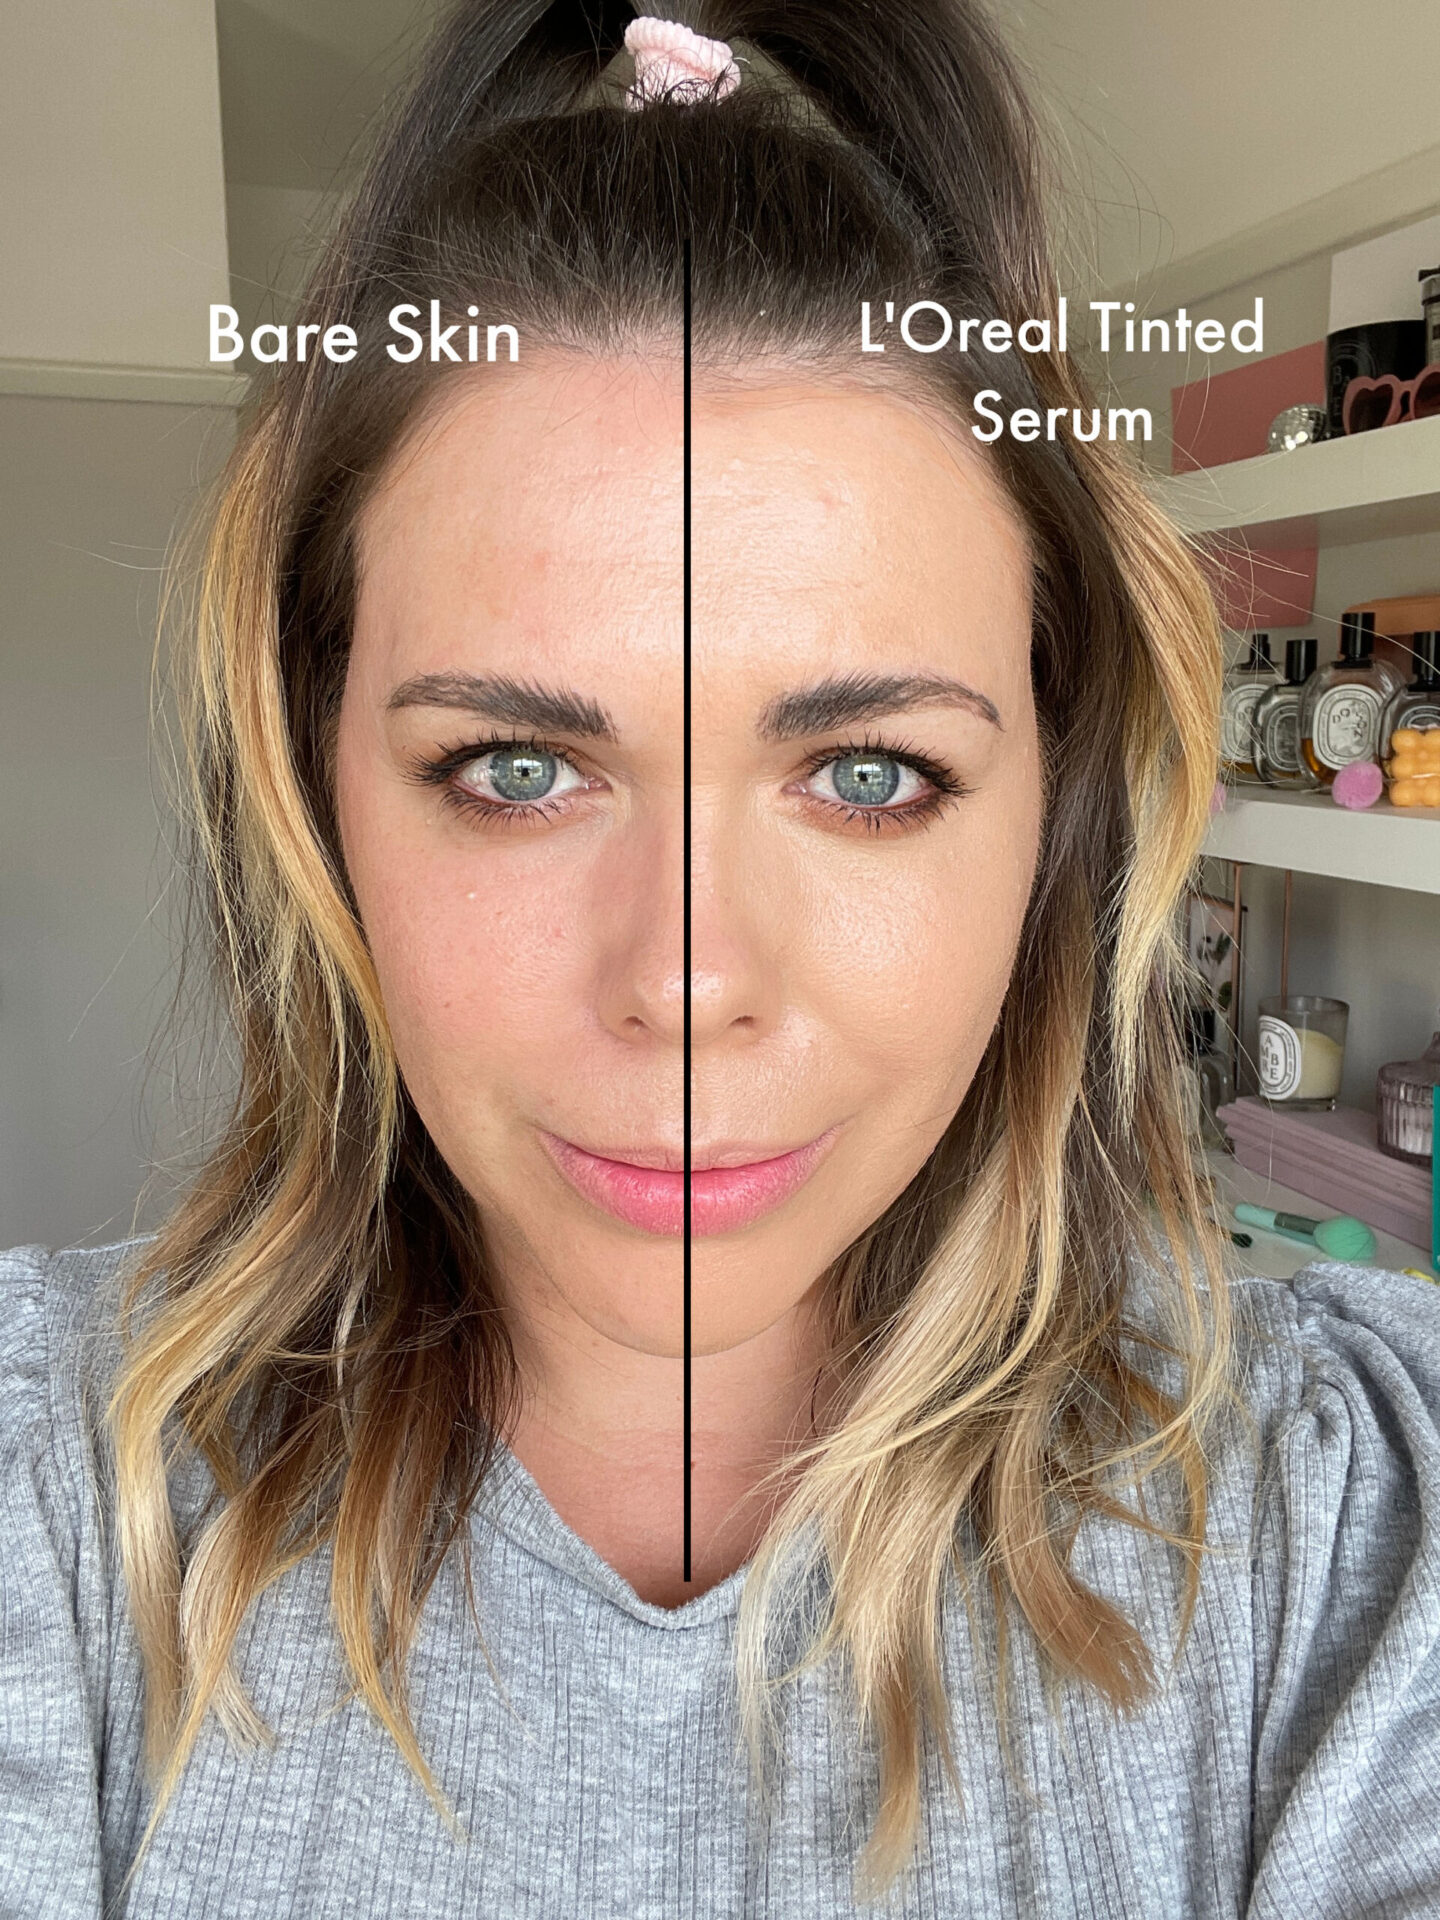 L'Oreal True Match Plumping Tinted Serum review before and after